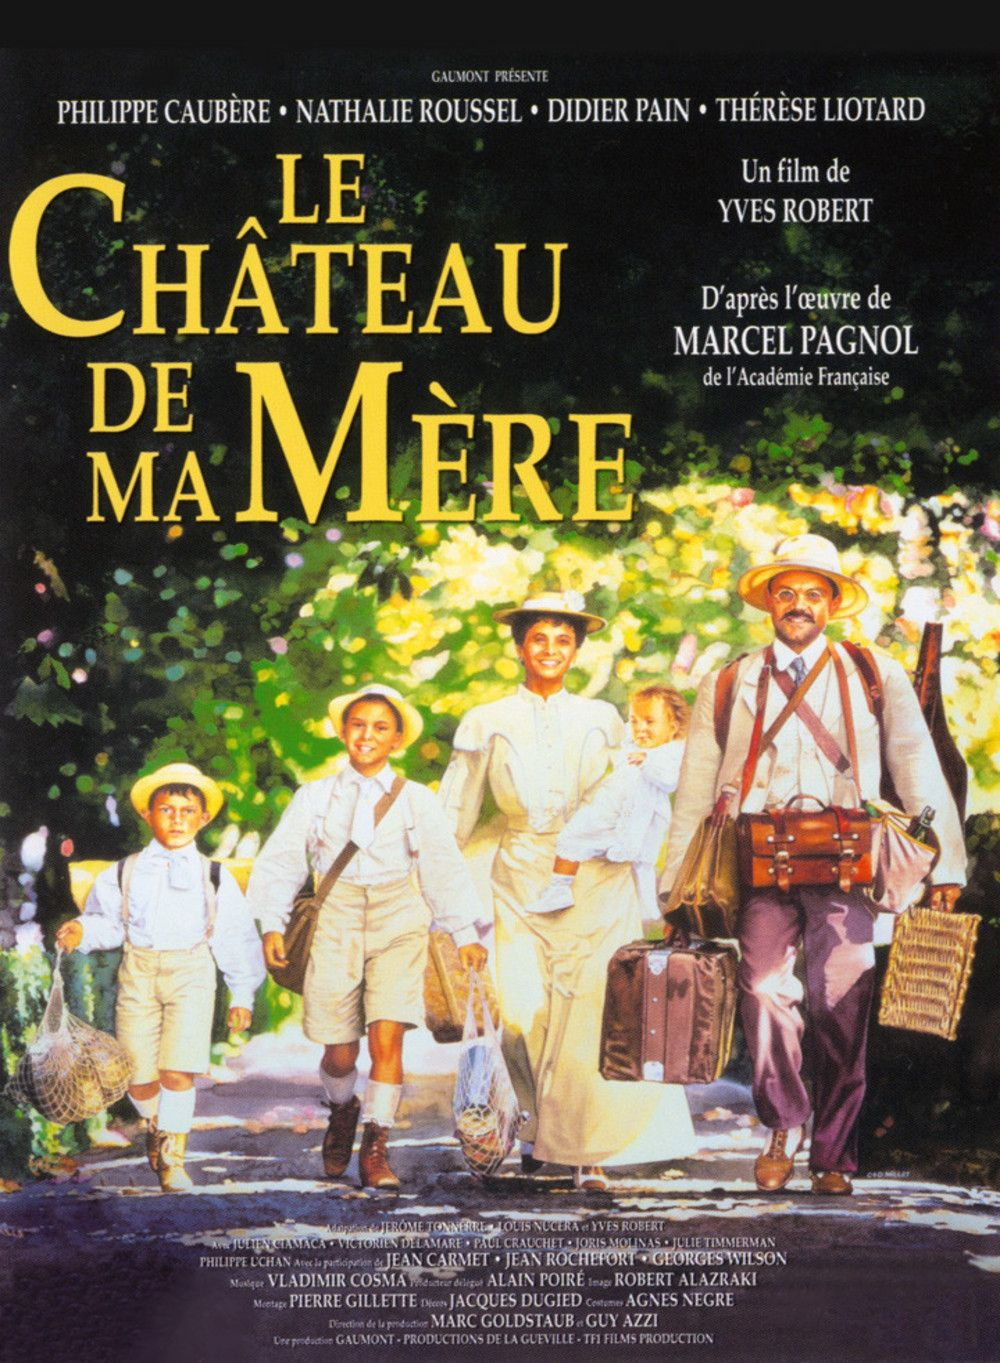 Le Chateau De Ma Mere A Sequel To La Gloire De Mon Pere Set In Provence Marcel Pagnol S Loving Tribute To His Mother Marcel Pagnol Film Yves Robert